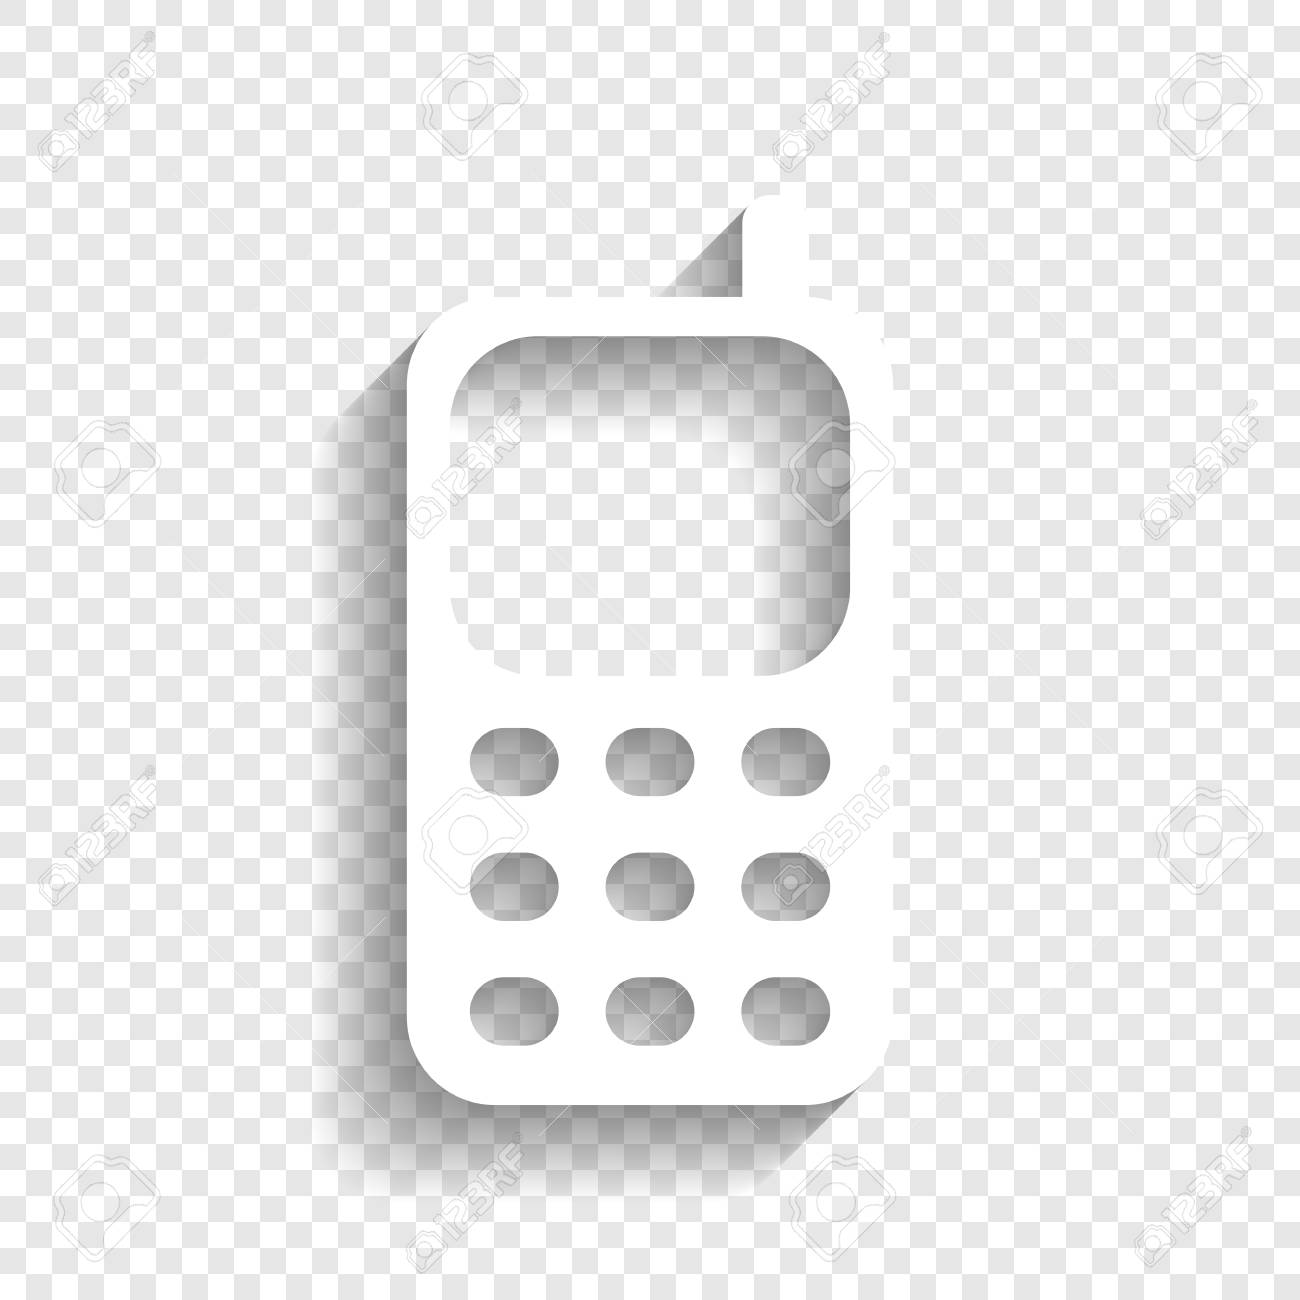 8911 Phone free clipart.